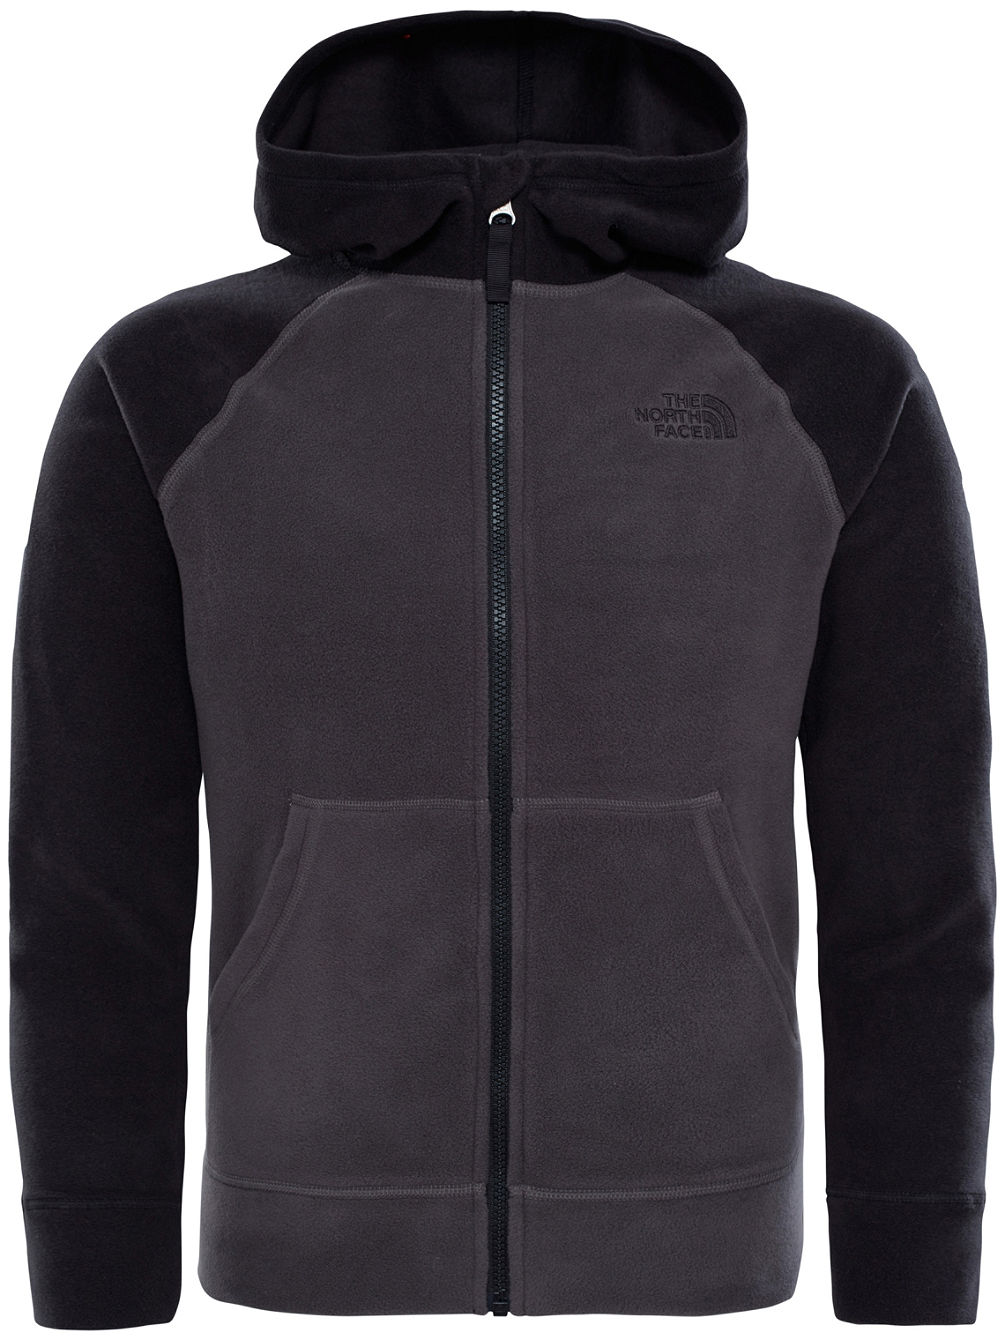 Glacier Hooded Fleece Jacket